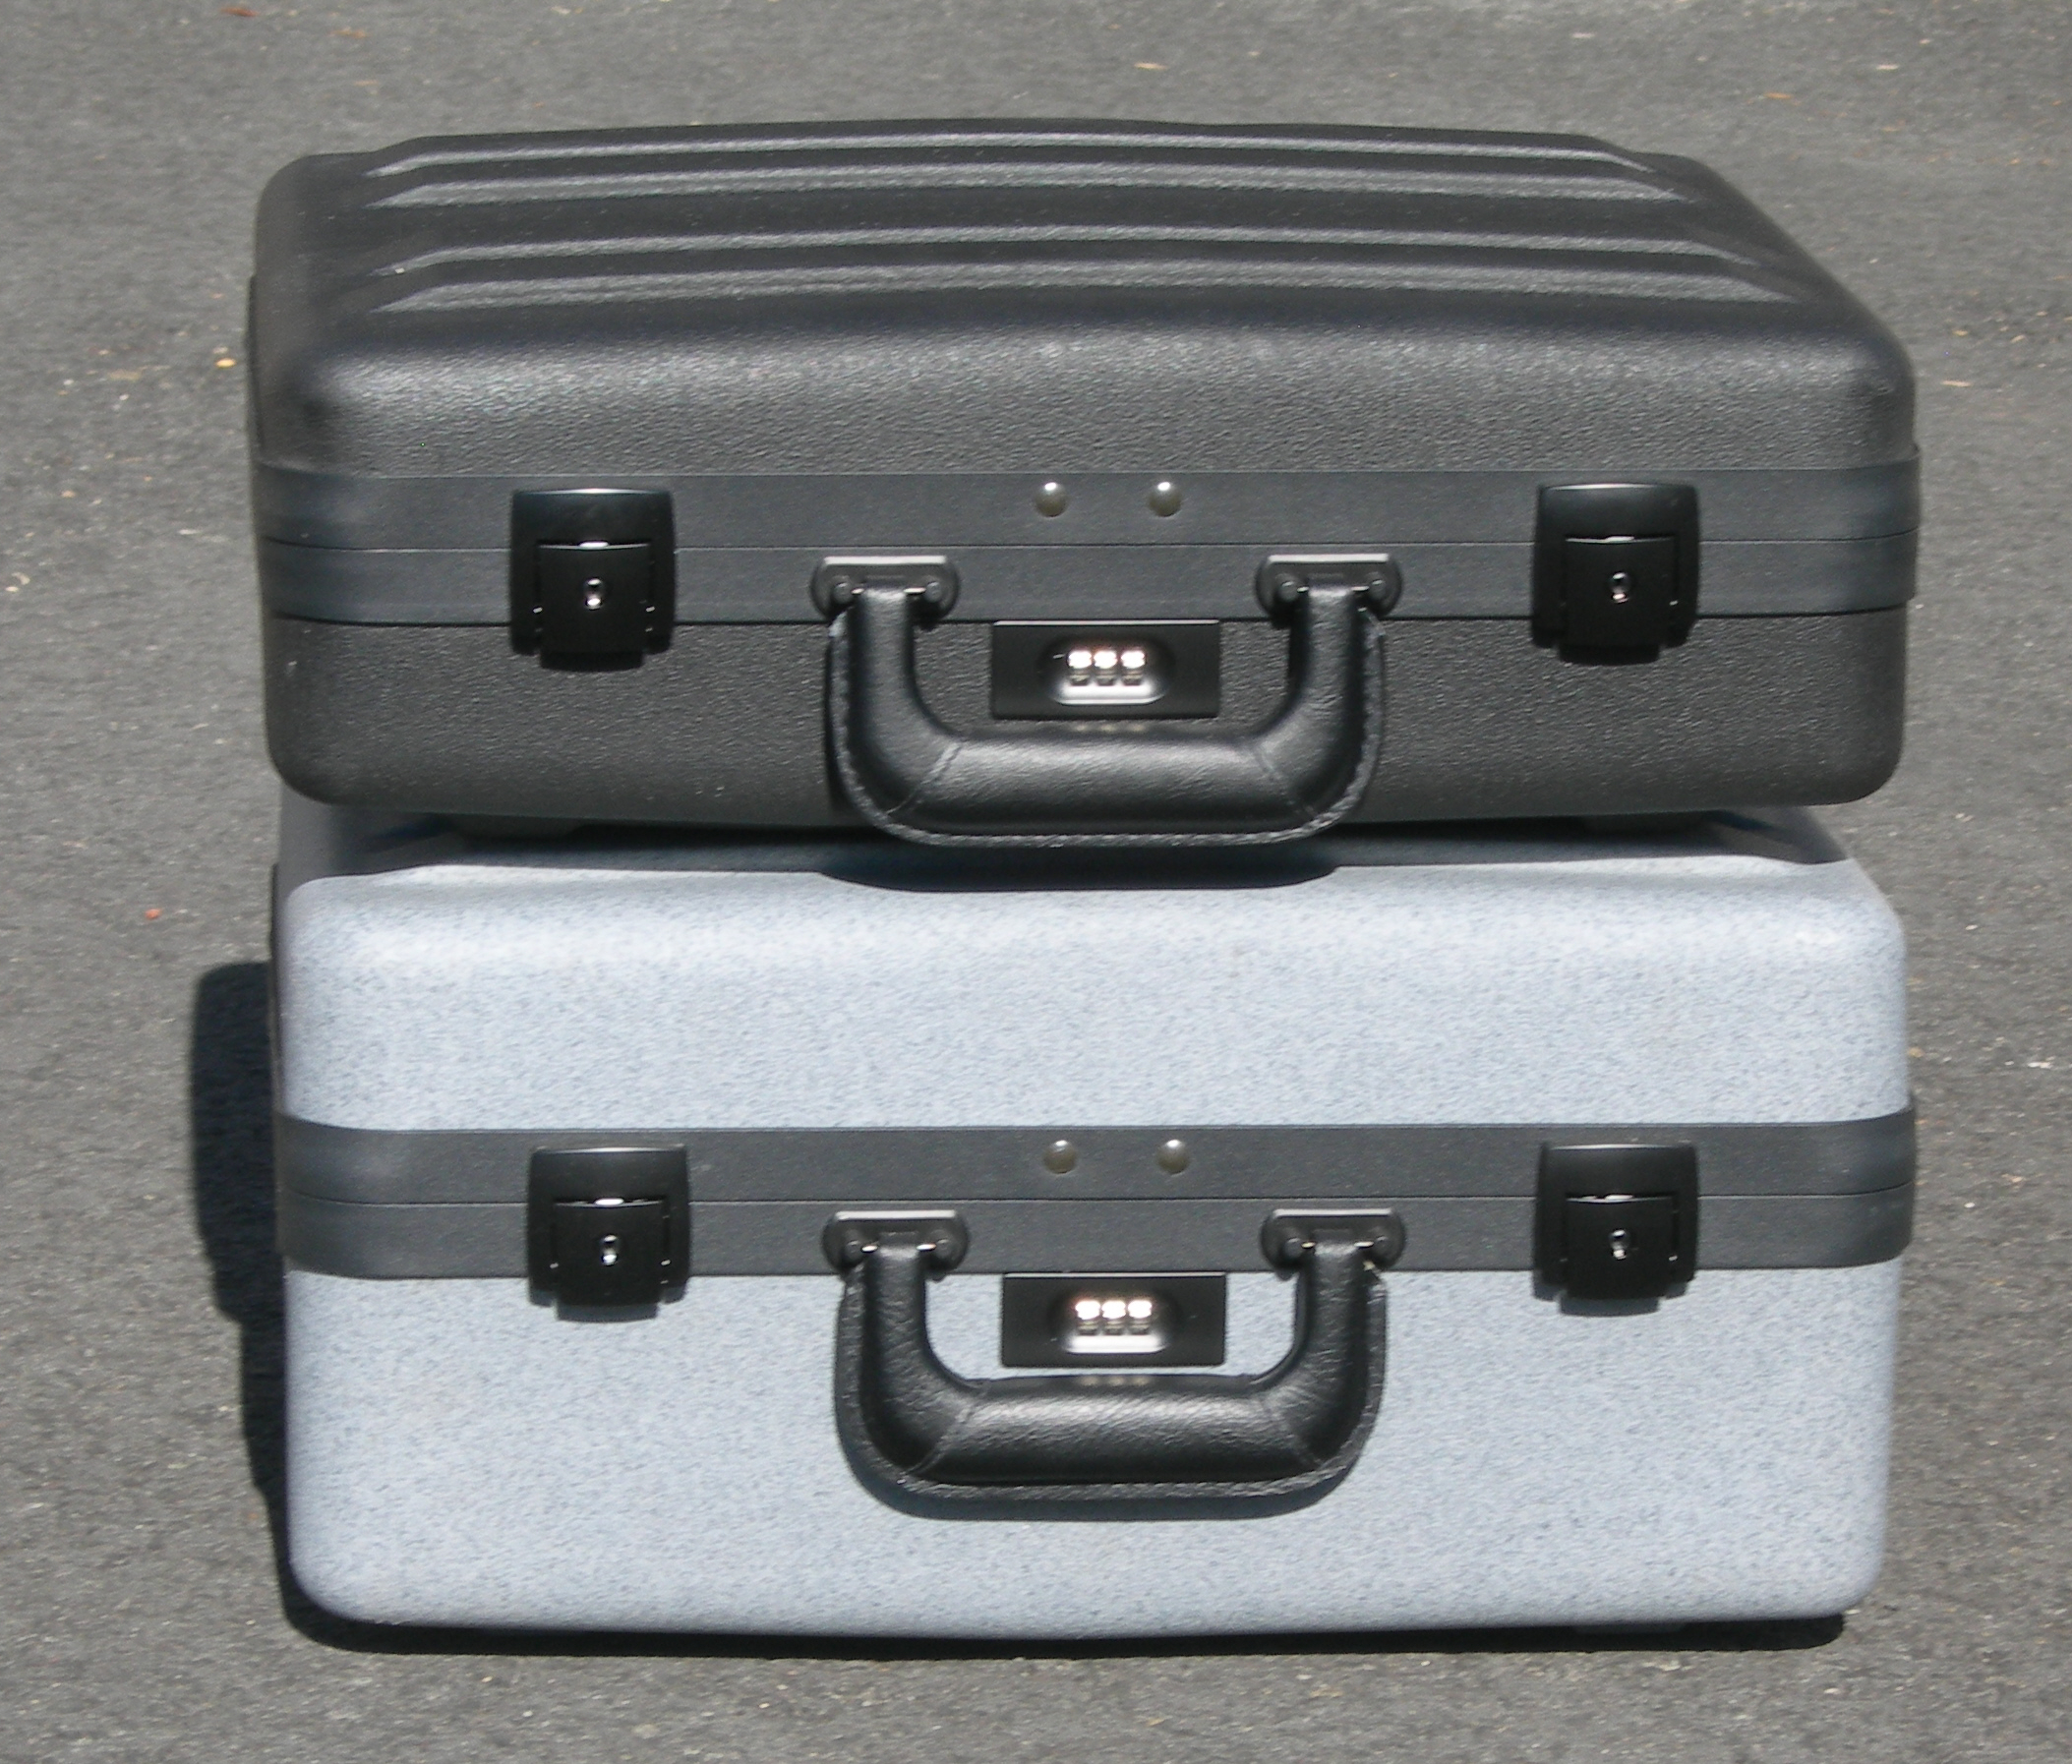 RC Toolkit cases lockable